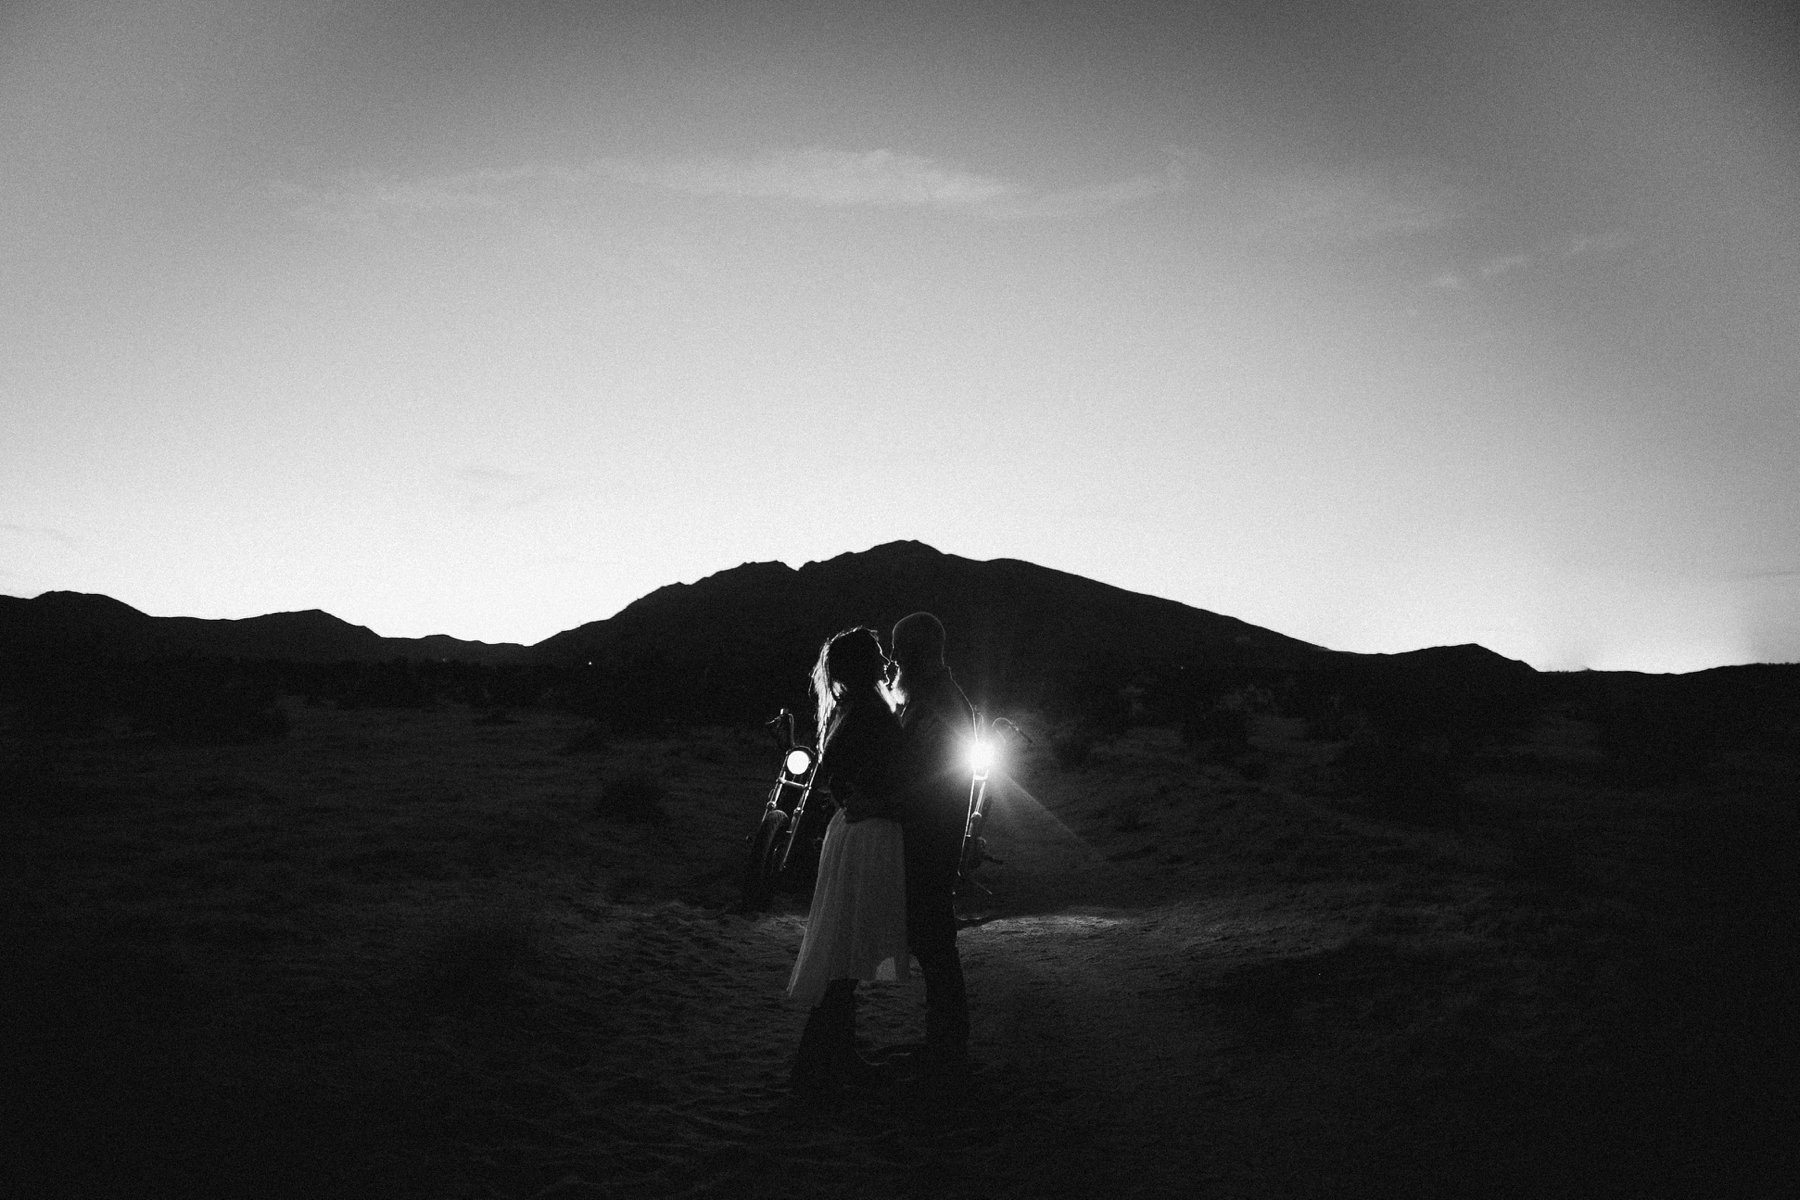 motorcycle-elopement-in-joshua-tree_0040.jpg